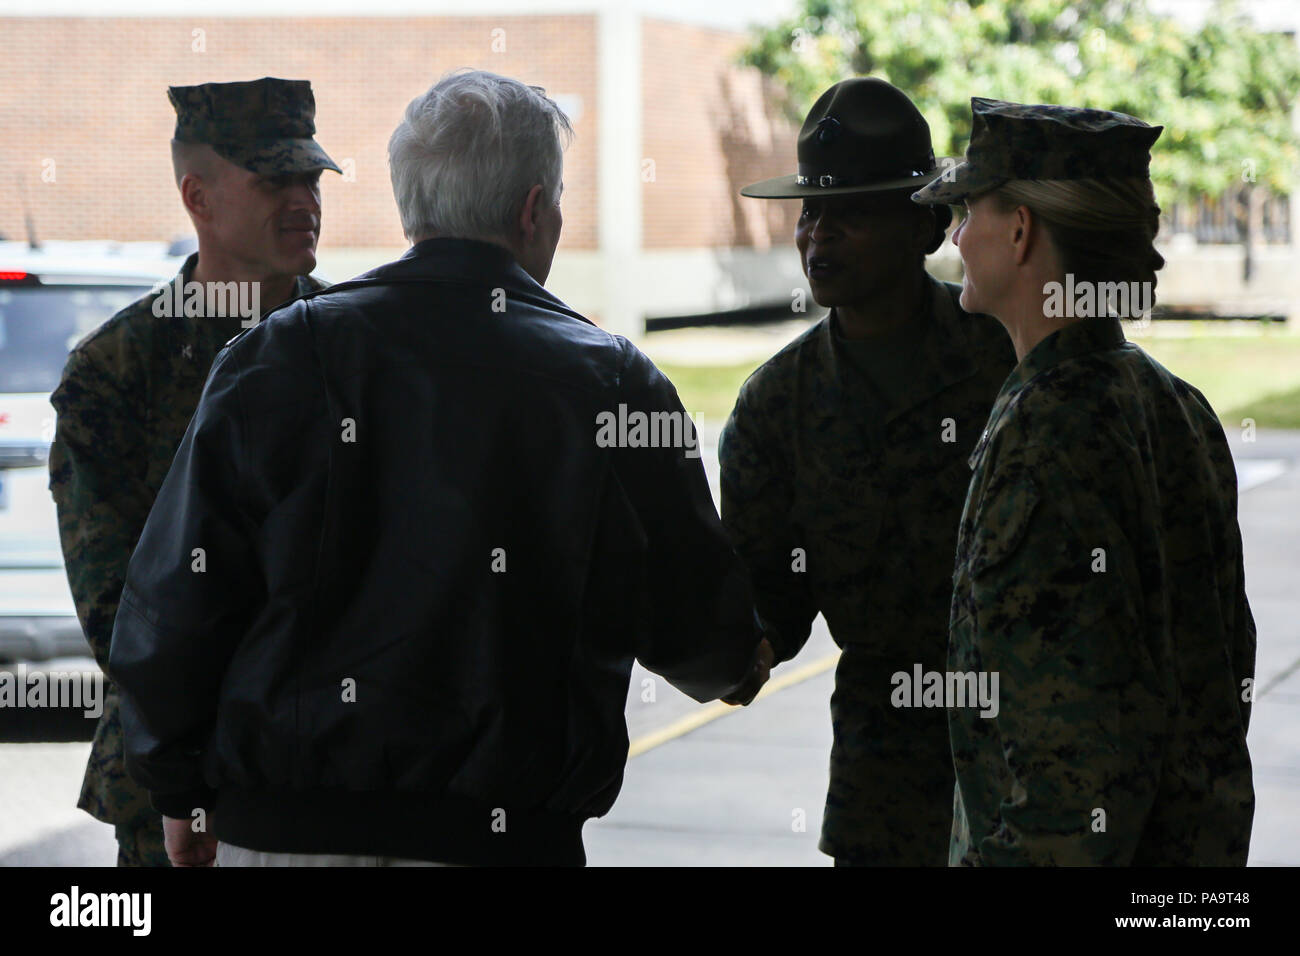 Secretary of the Navy Ray Mabus, left, shakes hands with U.S. Marine Corps Sgt. Maj. Donna A. Dunbar, sergeant major, 4th Recruit Training Battalion, Marine Corps Recruit Depot Parris Island (MCRDPI), at the 4th Recruit Training Battalion building aboard MCRDPI, S.C., March 3, 2015. Mabus visited MCRDPI in order to see firsthand how young men and women from across the country are transformed into United States Marines. (U.S. Marine Corps photo by Lance Cpl. Colby Cooper/Released) Stock Photo